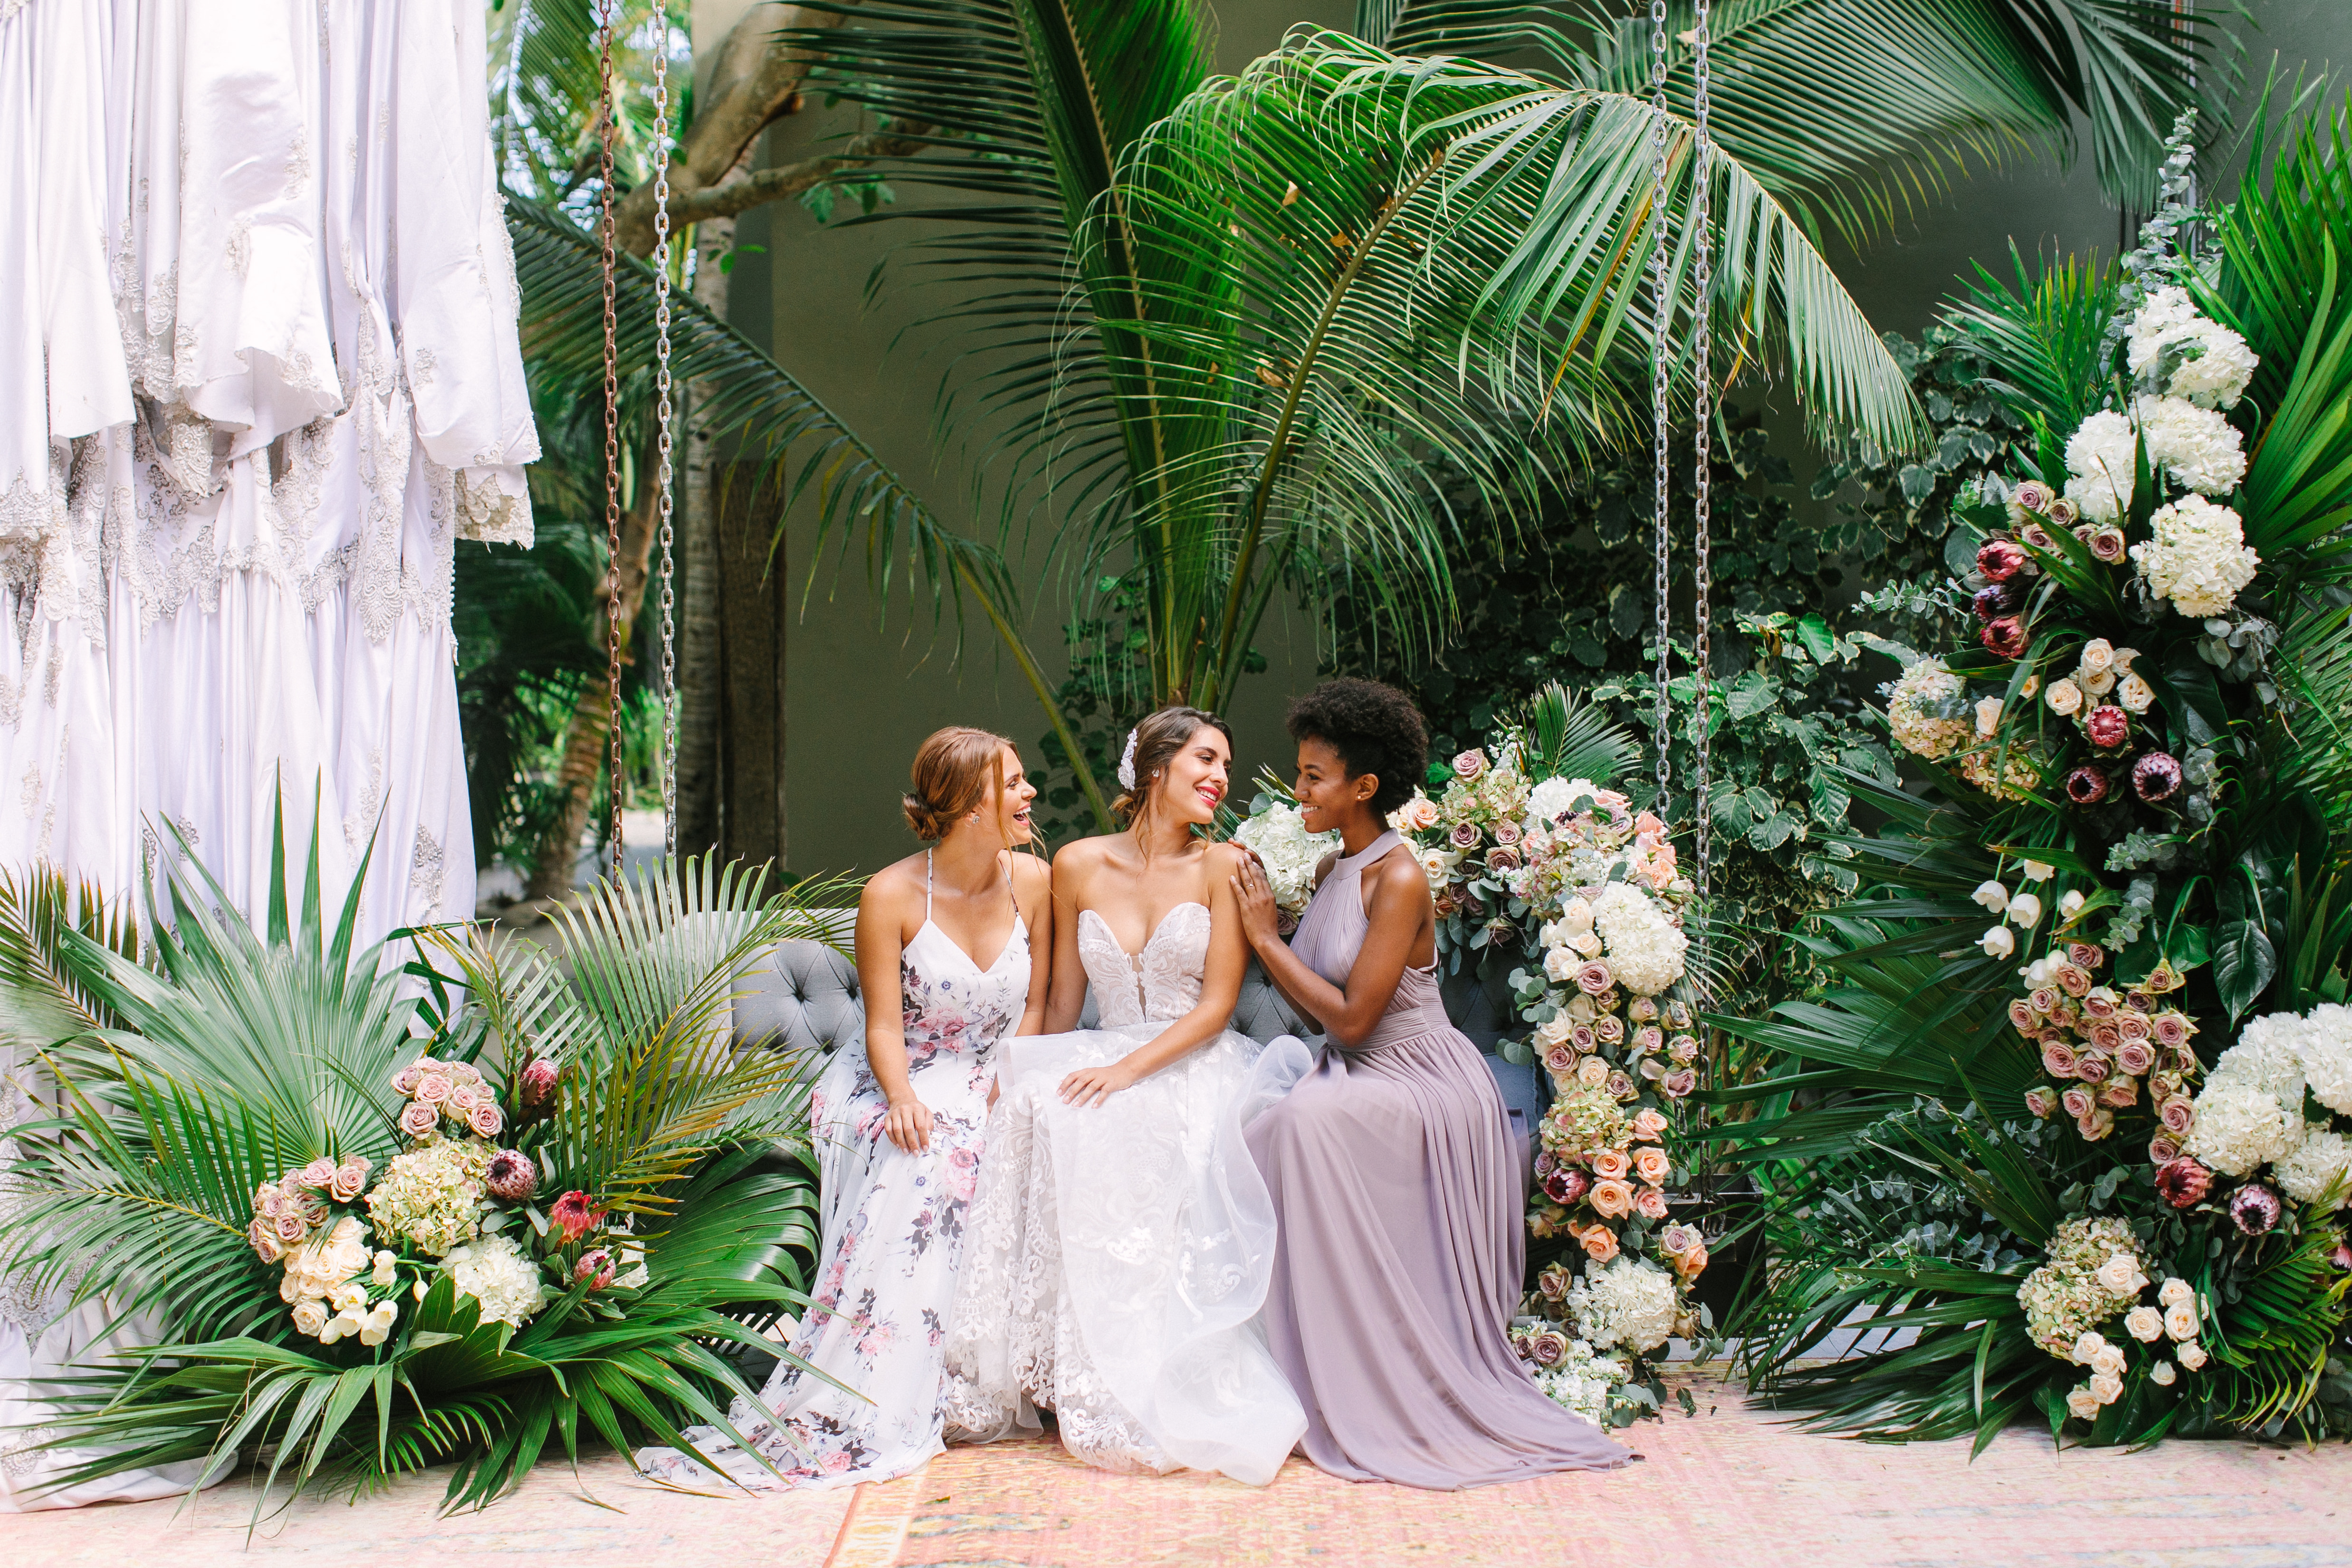 We're Obsessed with Weddings in Tulum–Here's Why! We took Kleinfeld Bridal wedding dresses and Kleinfeld Bridal Party bridesmaids dresses to Tulum, Mexico for a fun photoshoot on the beach full of flowers, sun, sand and fun!